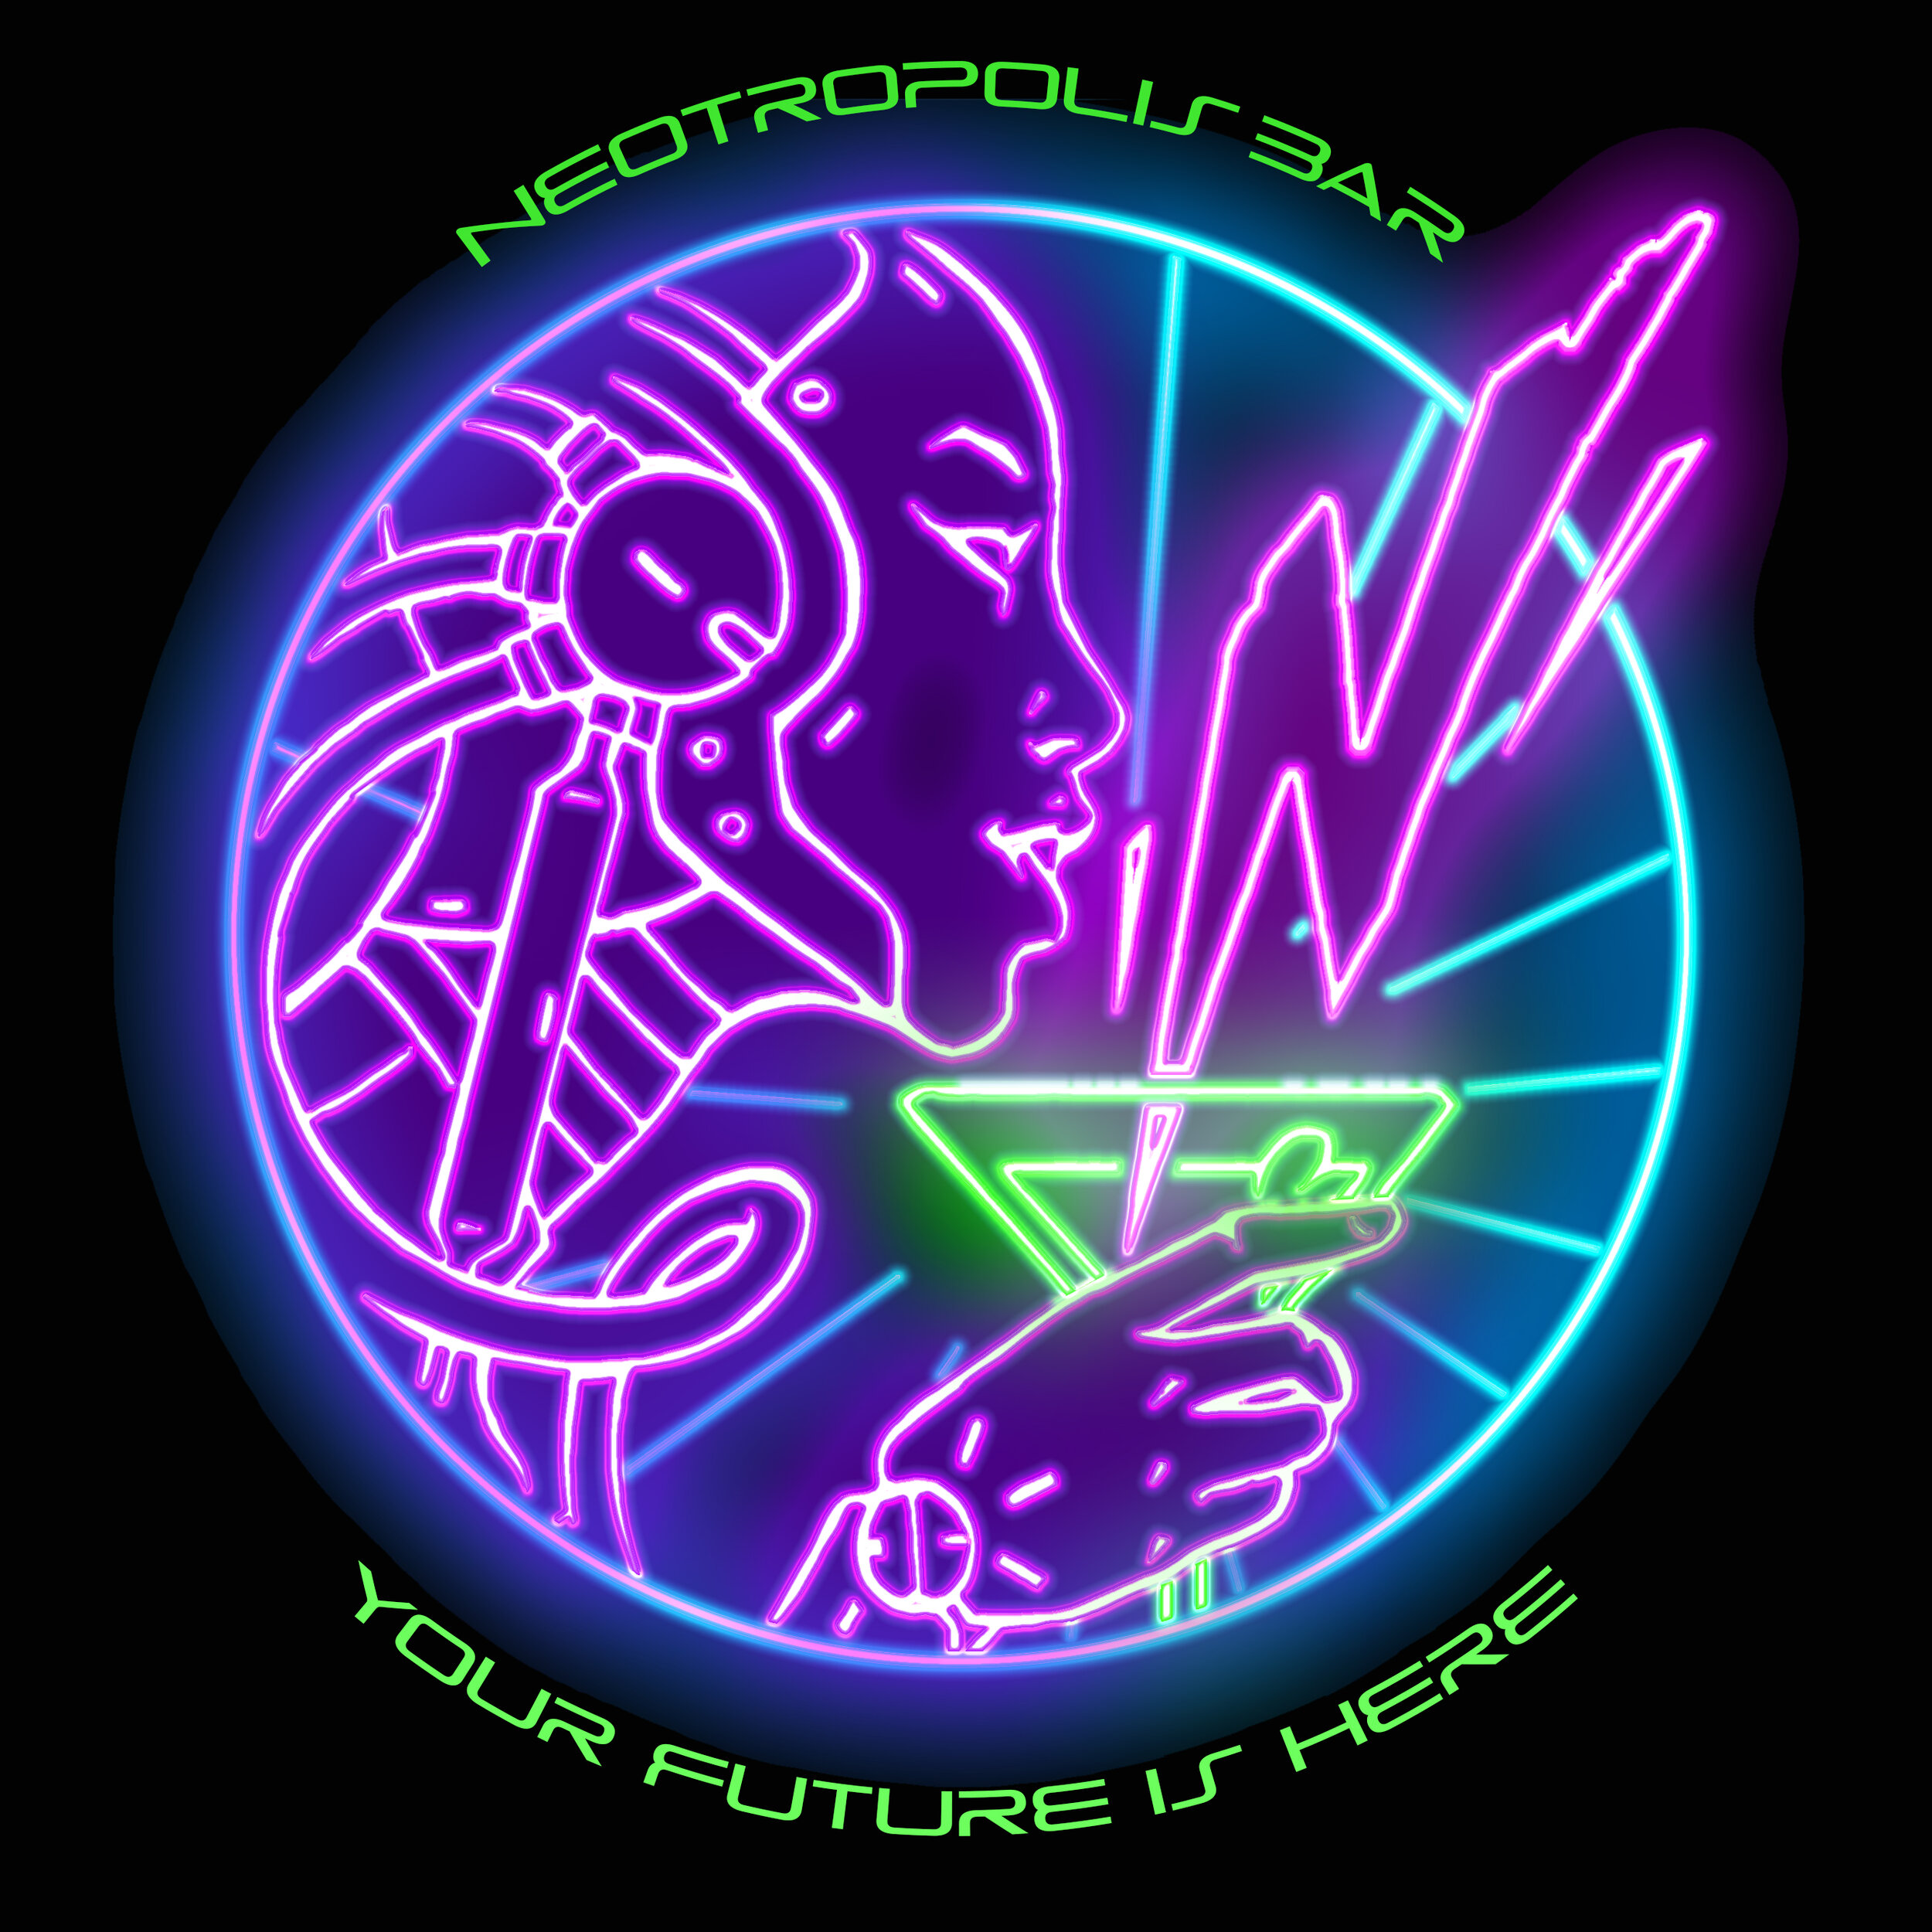 Our newest logo- featuring the Neotropolis Robot